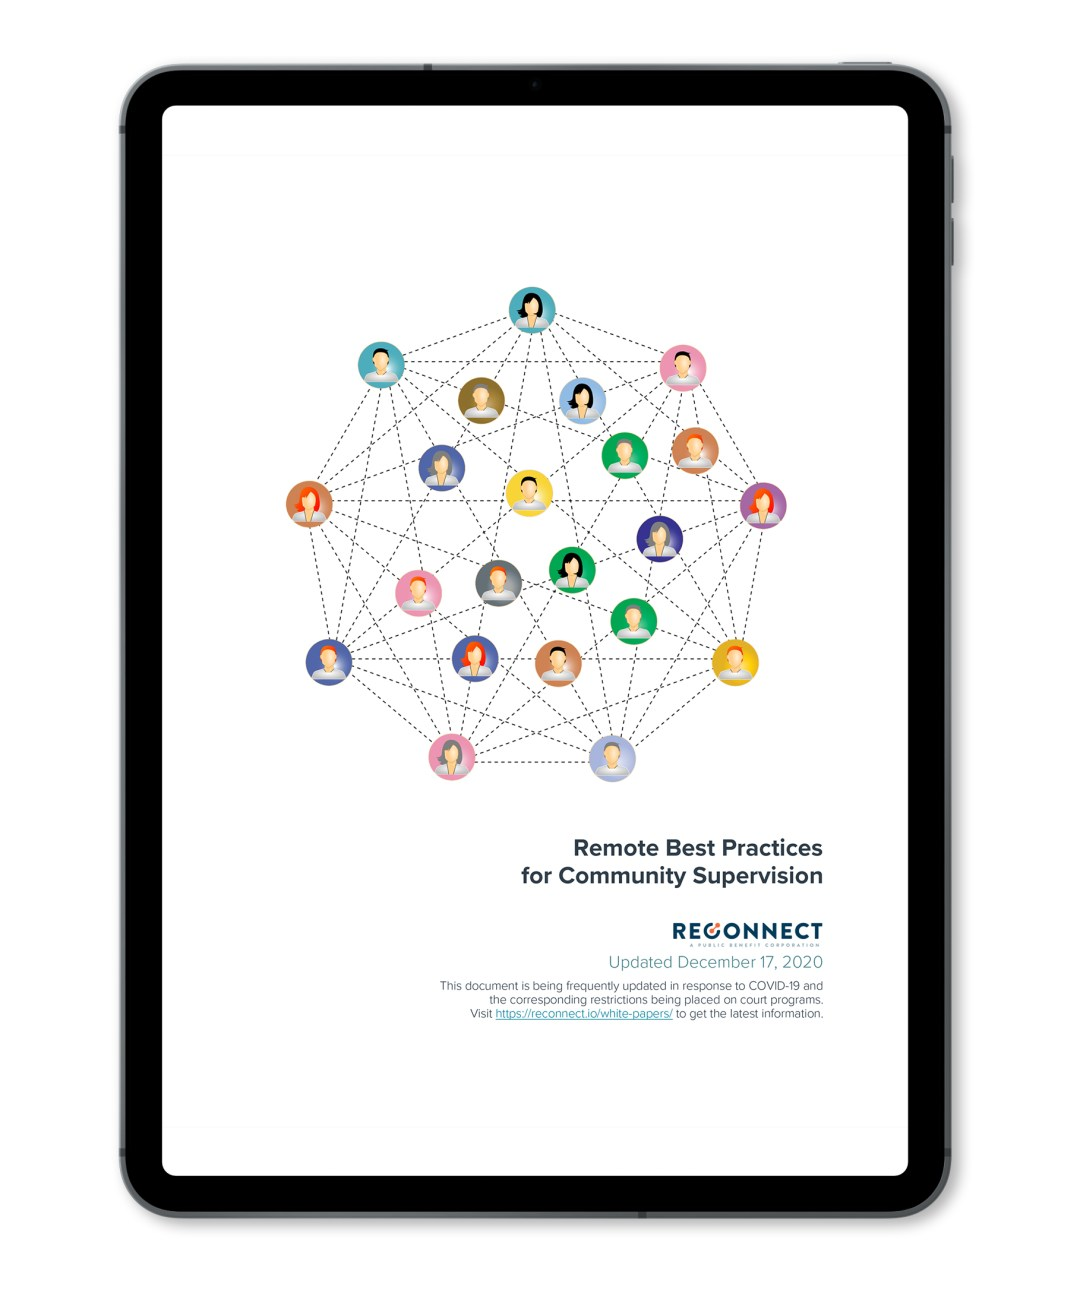 An iPad with Reconnect's Remote Best Practices white paper on it.